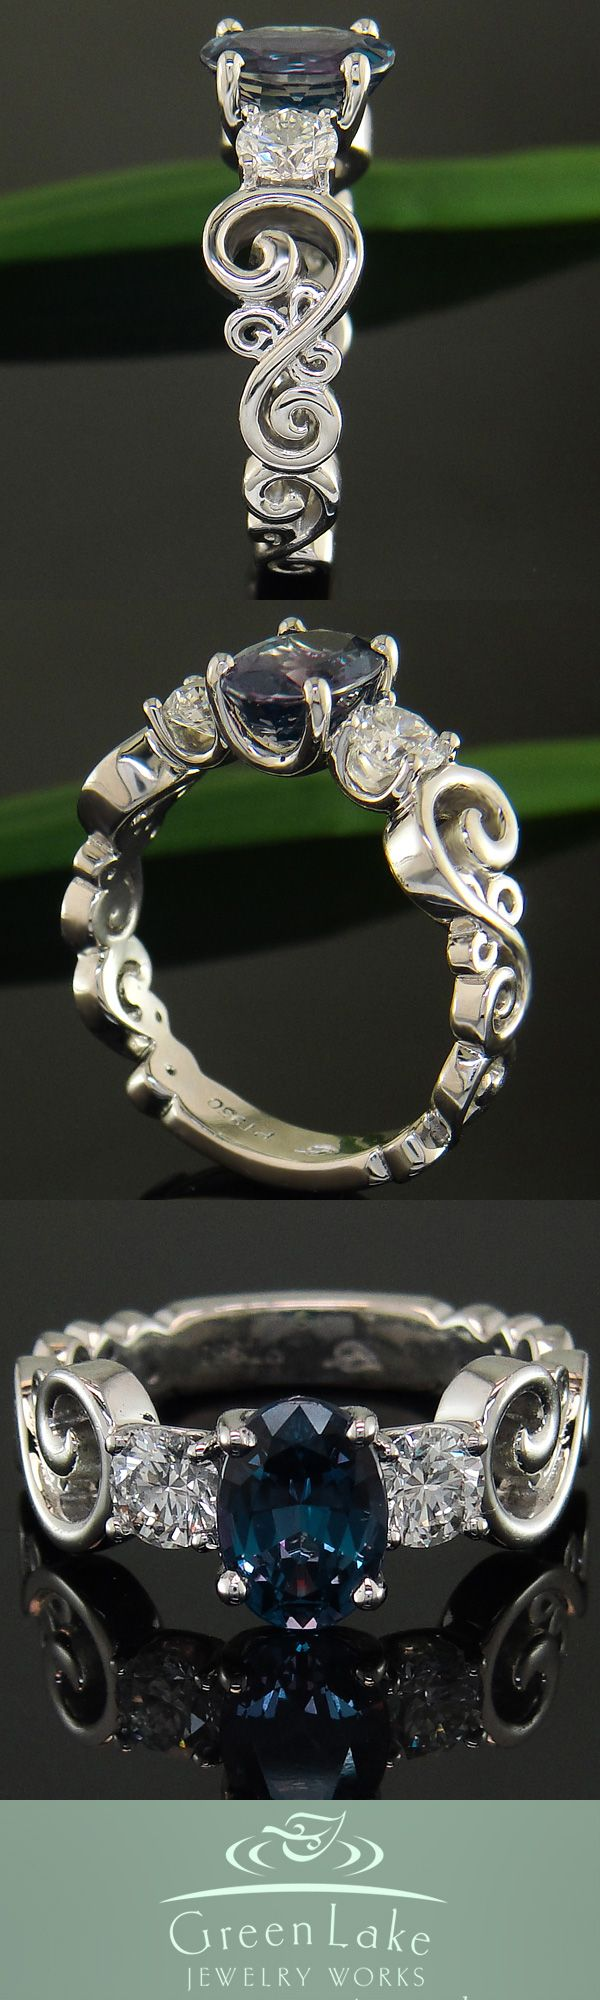 Swirl ring with alexandrite center and diamond accent gems.